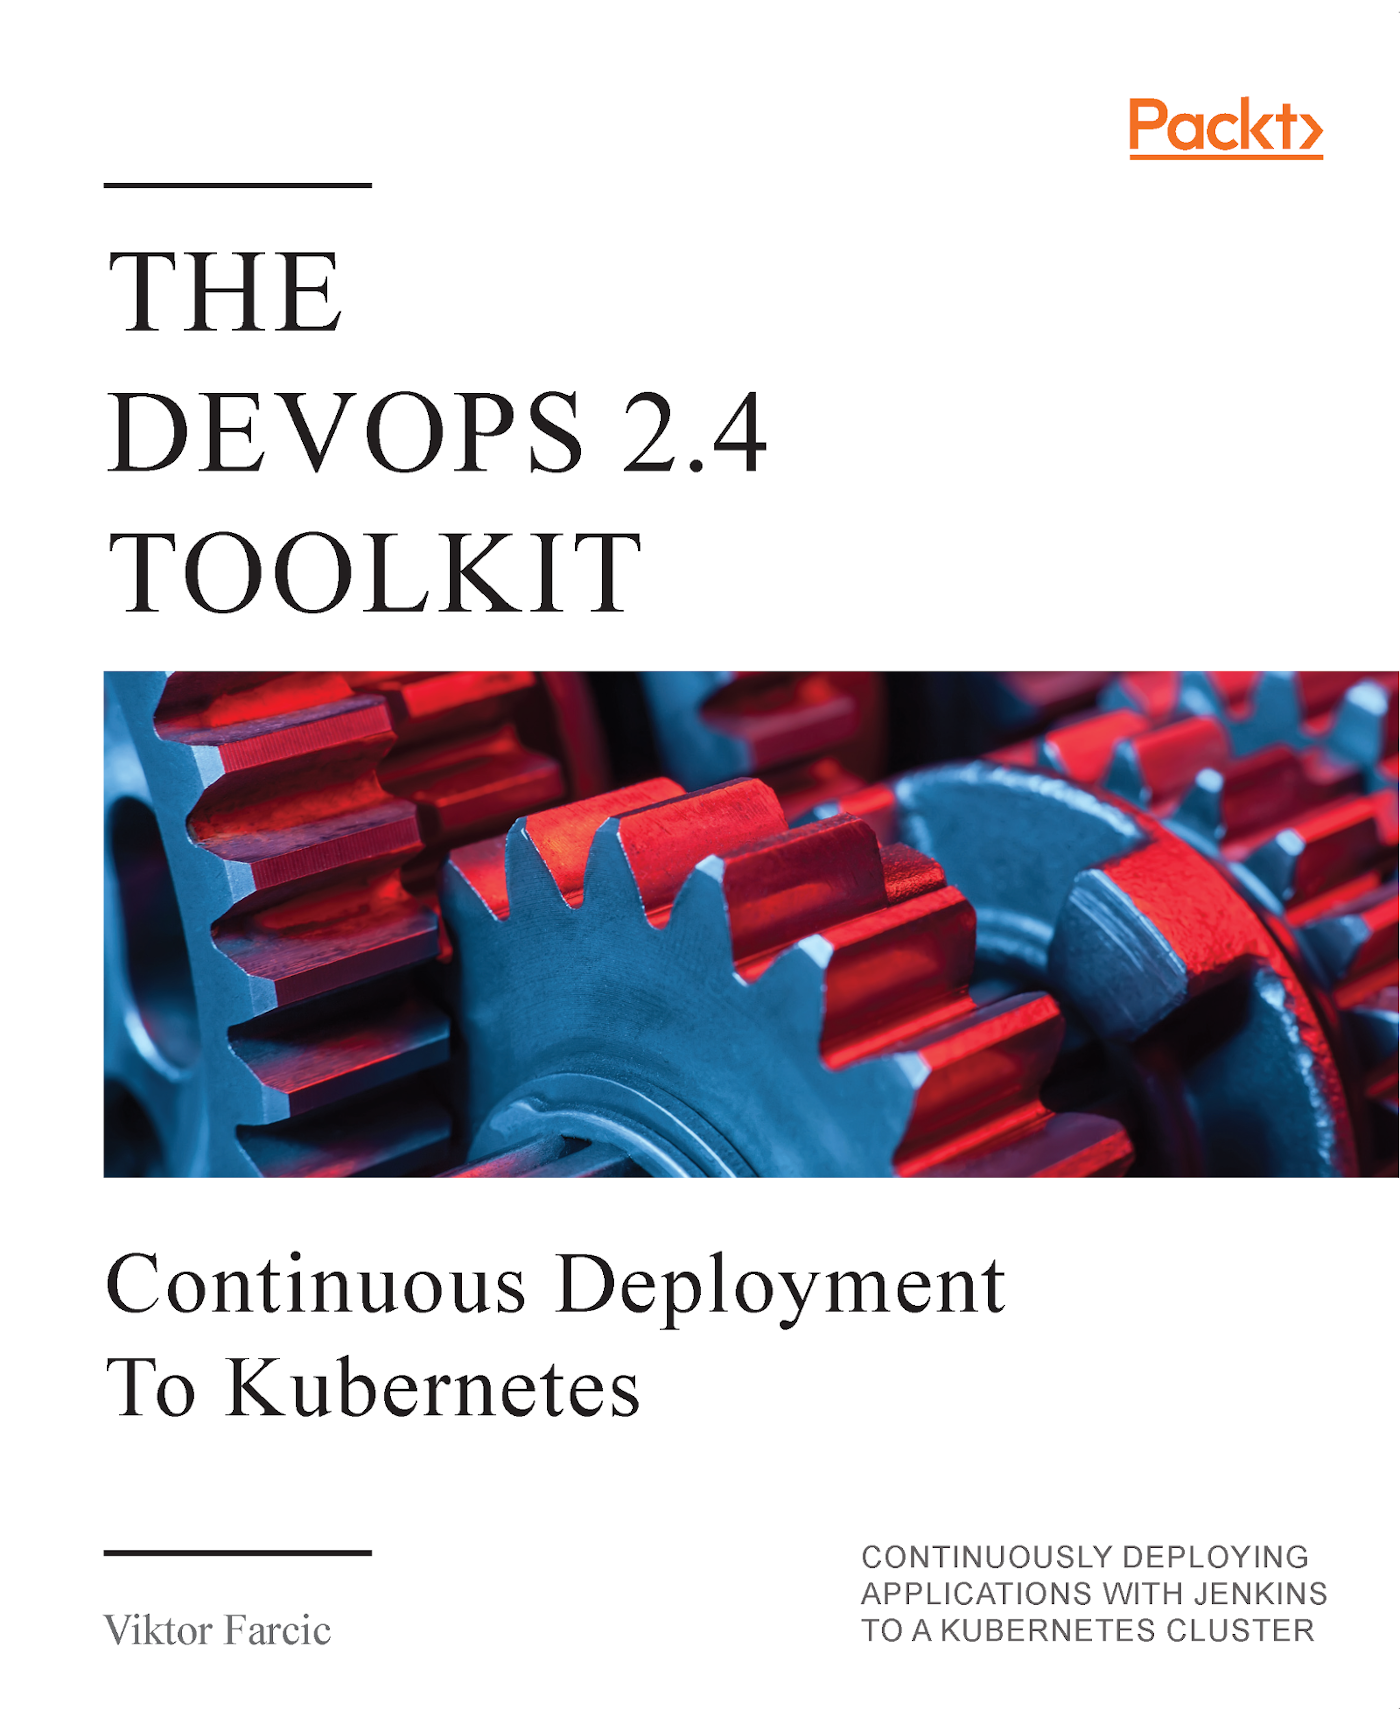 The DevOps 2.4 Toolkit